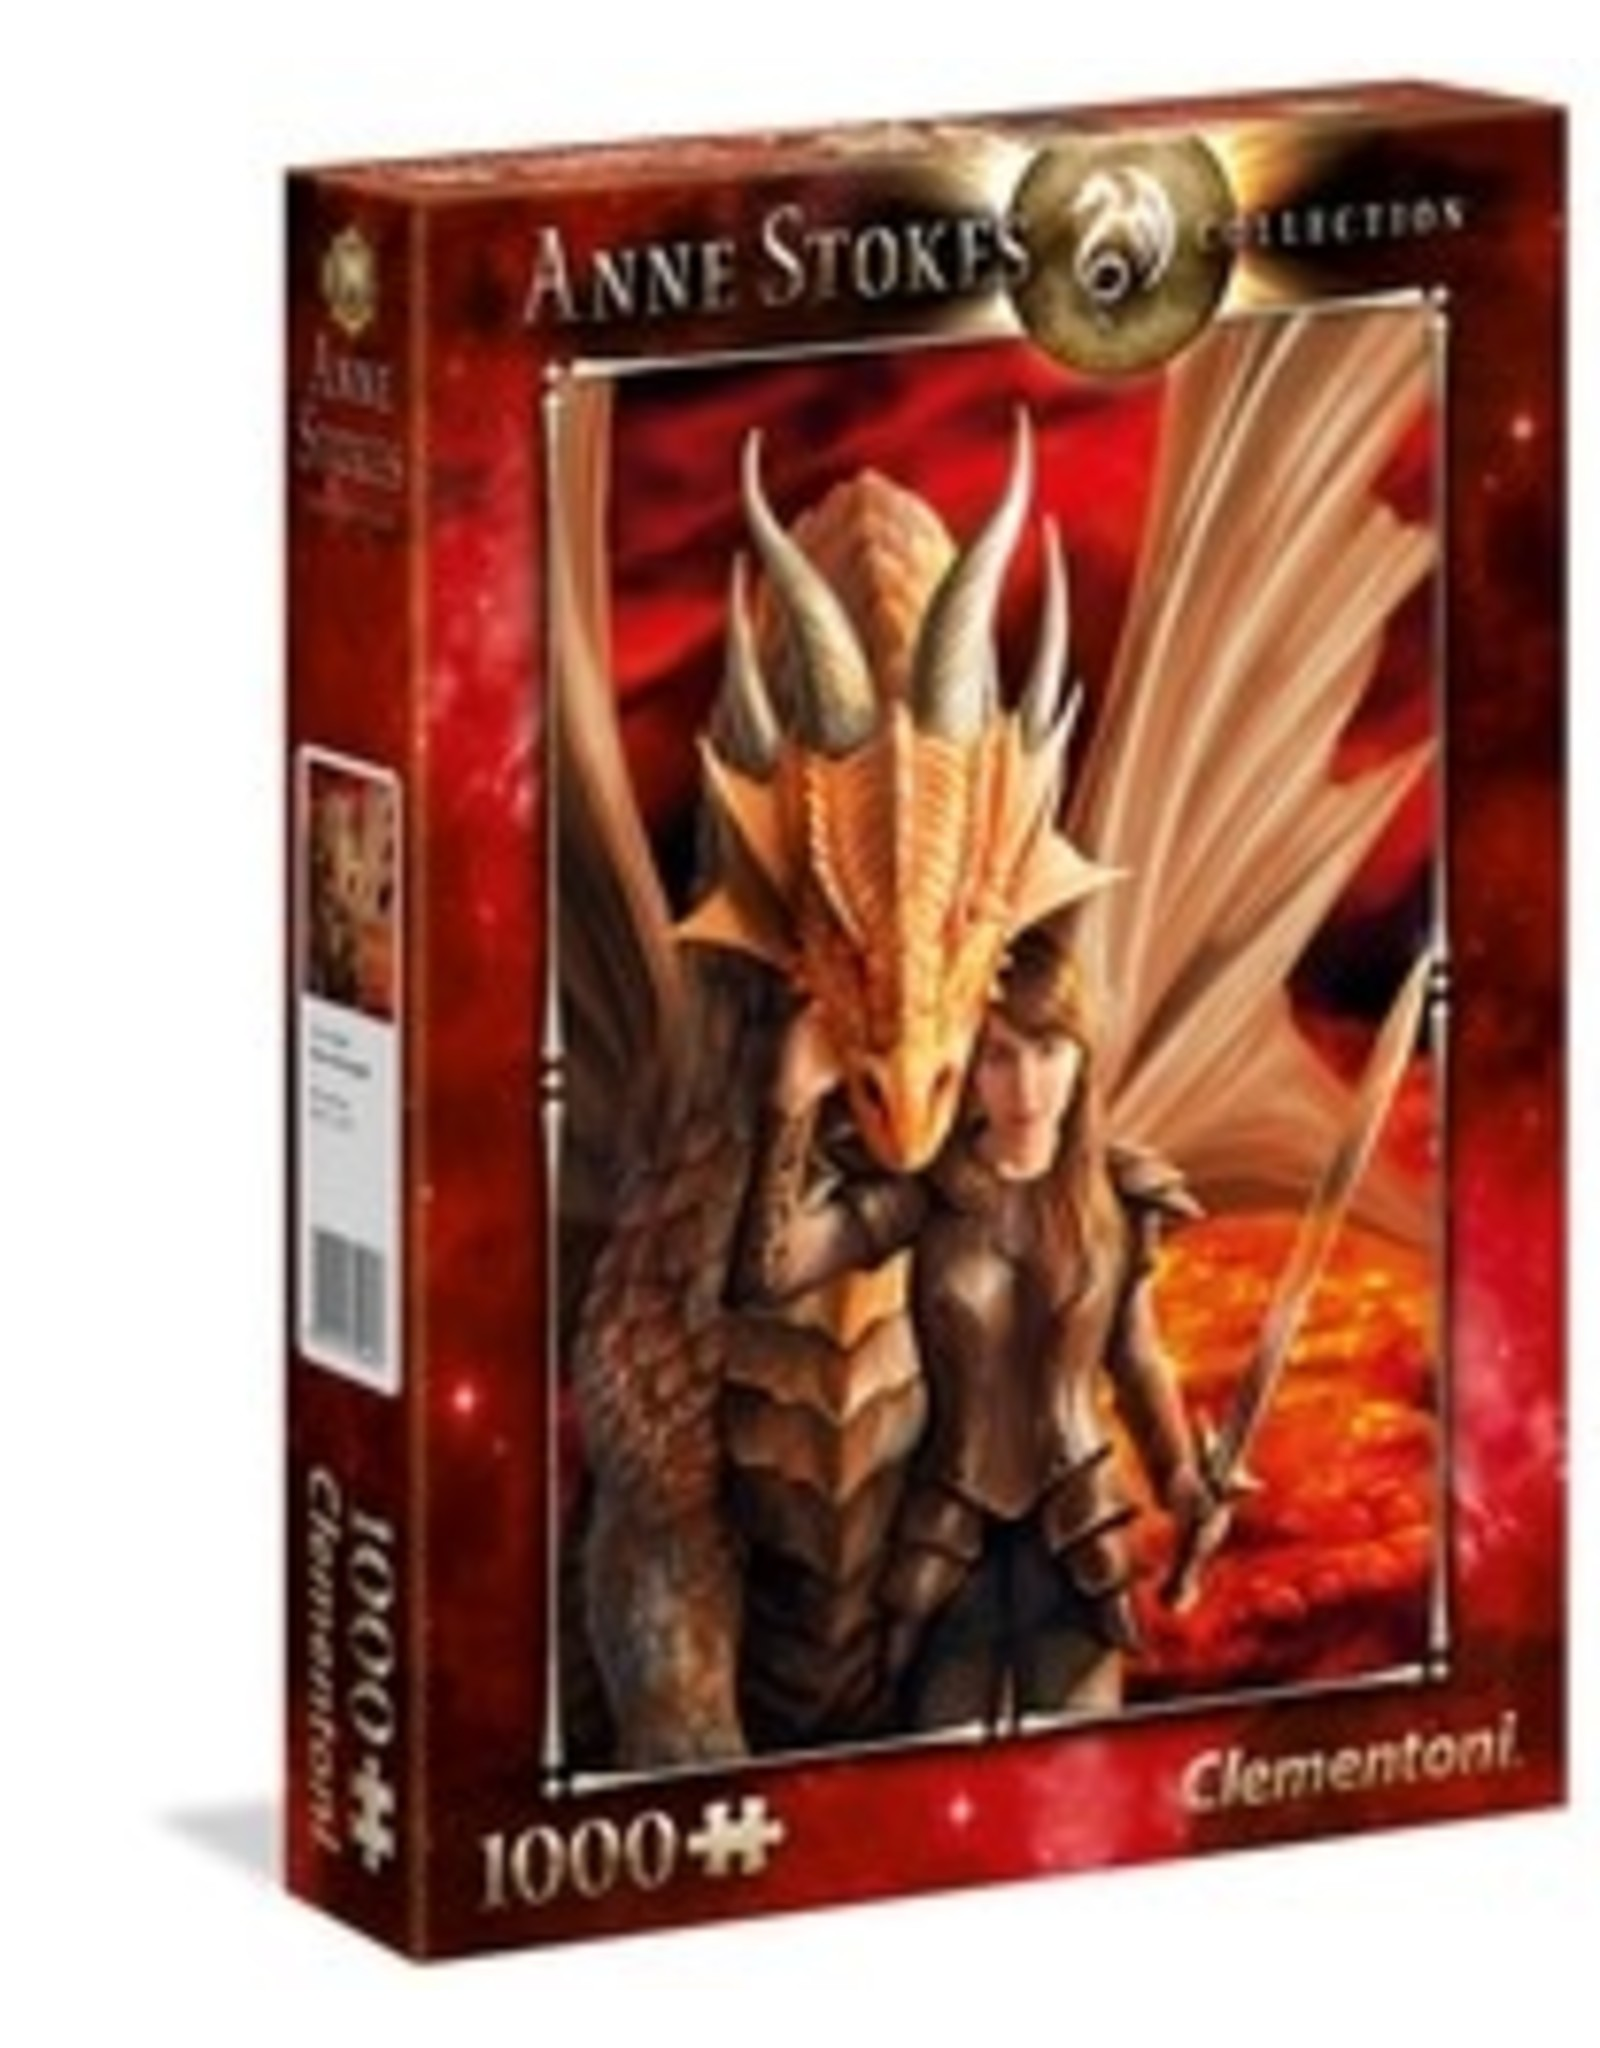 Clementoni Puzzles Anne Stokes Collection - Inner Strength, 1000 pc